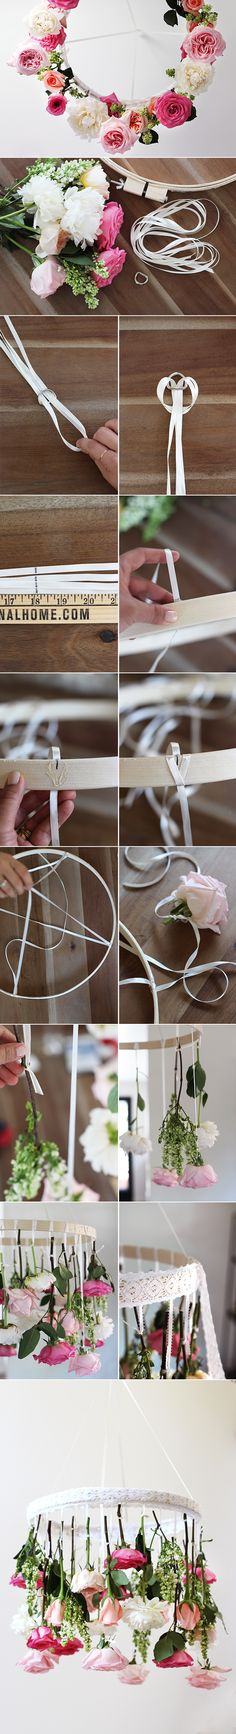 DIY - FLOWER CHANDELIER ( CLICK THROUGH FOR TUTORIAL ) >> YOU WILL NEED : 3-4 DOZEN FLOWERS , A WOODEN EMBROIDERY HOOP , 15-20 YARDS OF ASSORTED RIBBON , 1-2 YARDS OF LACE TRIM , A D RING OR PLASTIC RING , FLORAL SHEARS , A BUCKET , GLUE GUN , SCISSORS